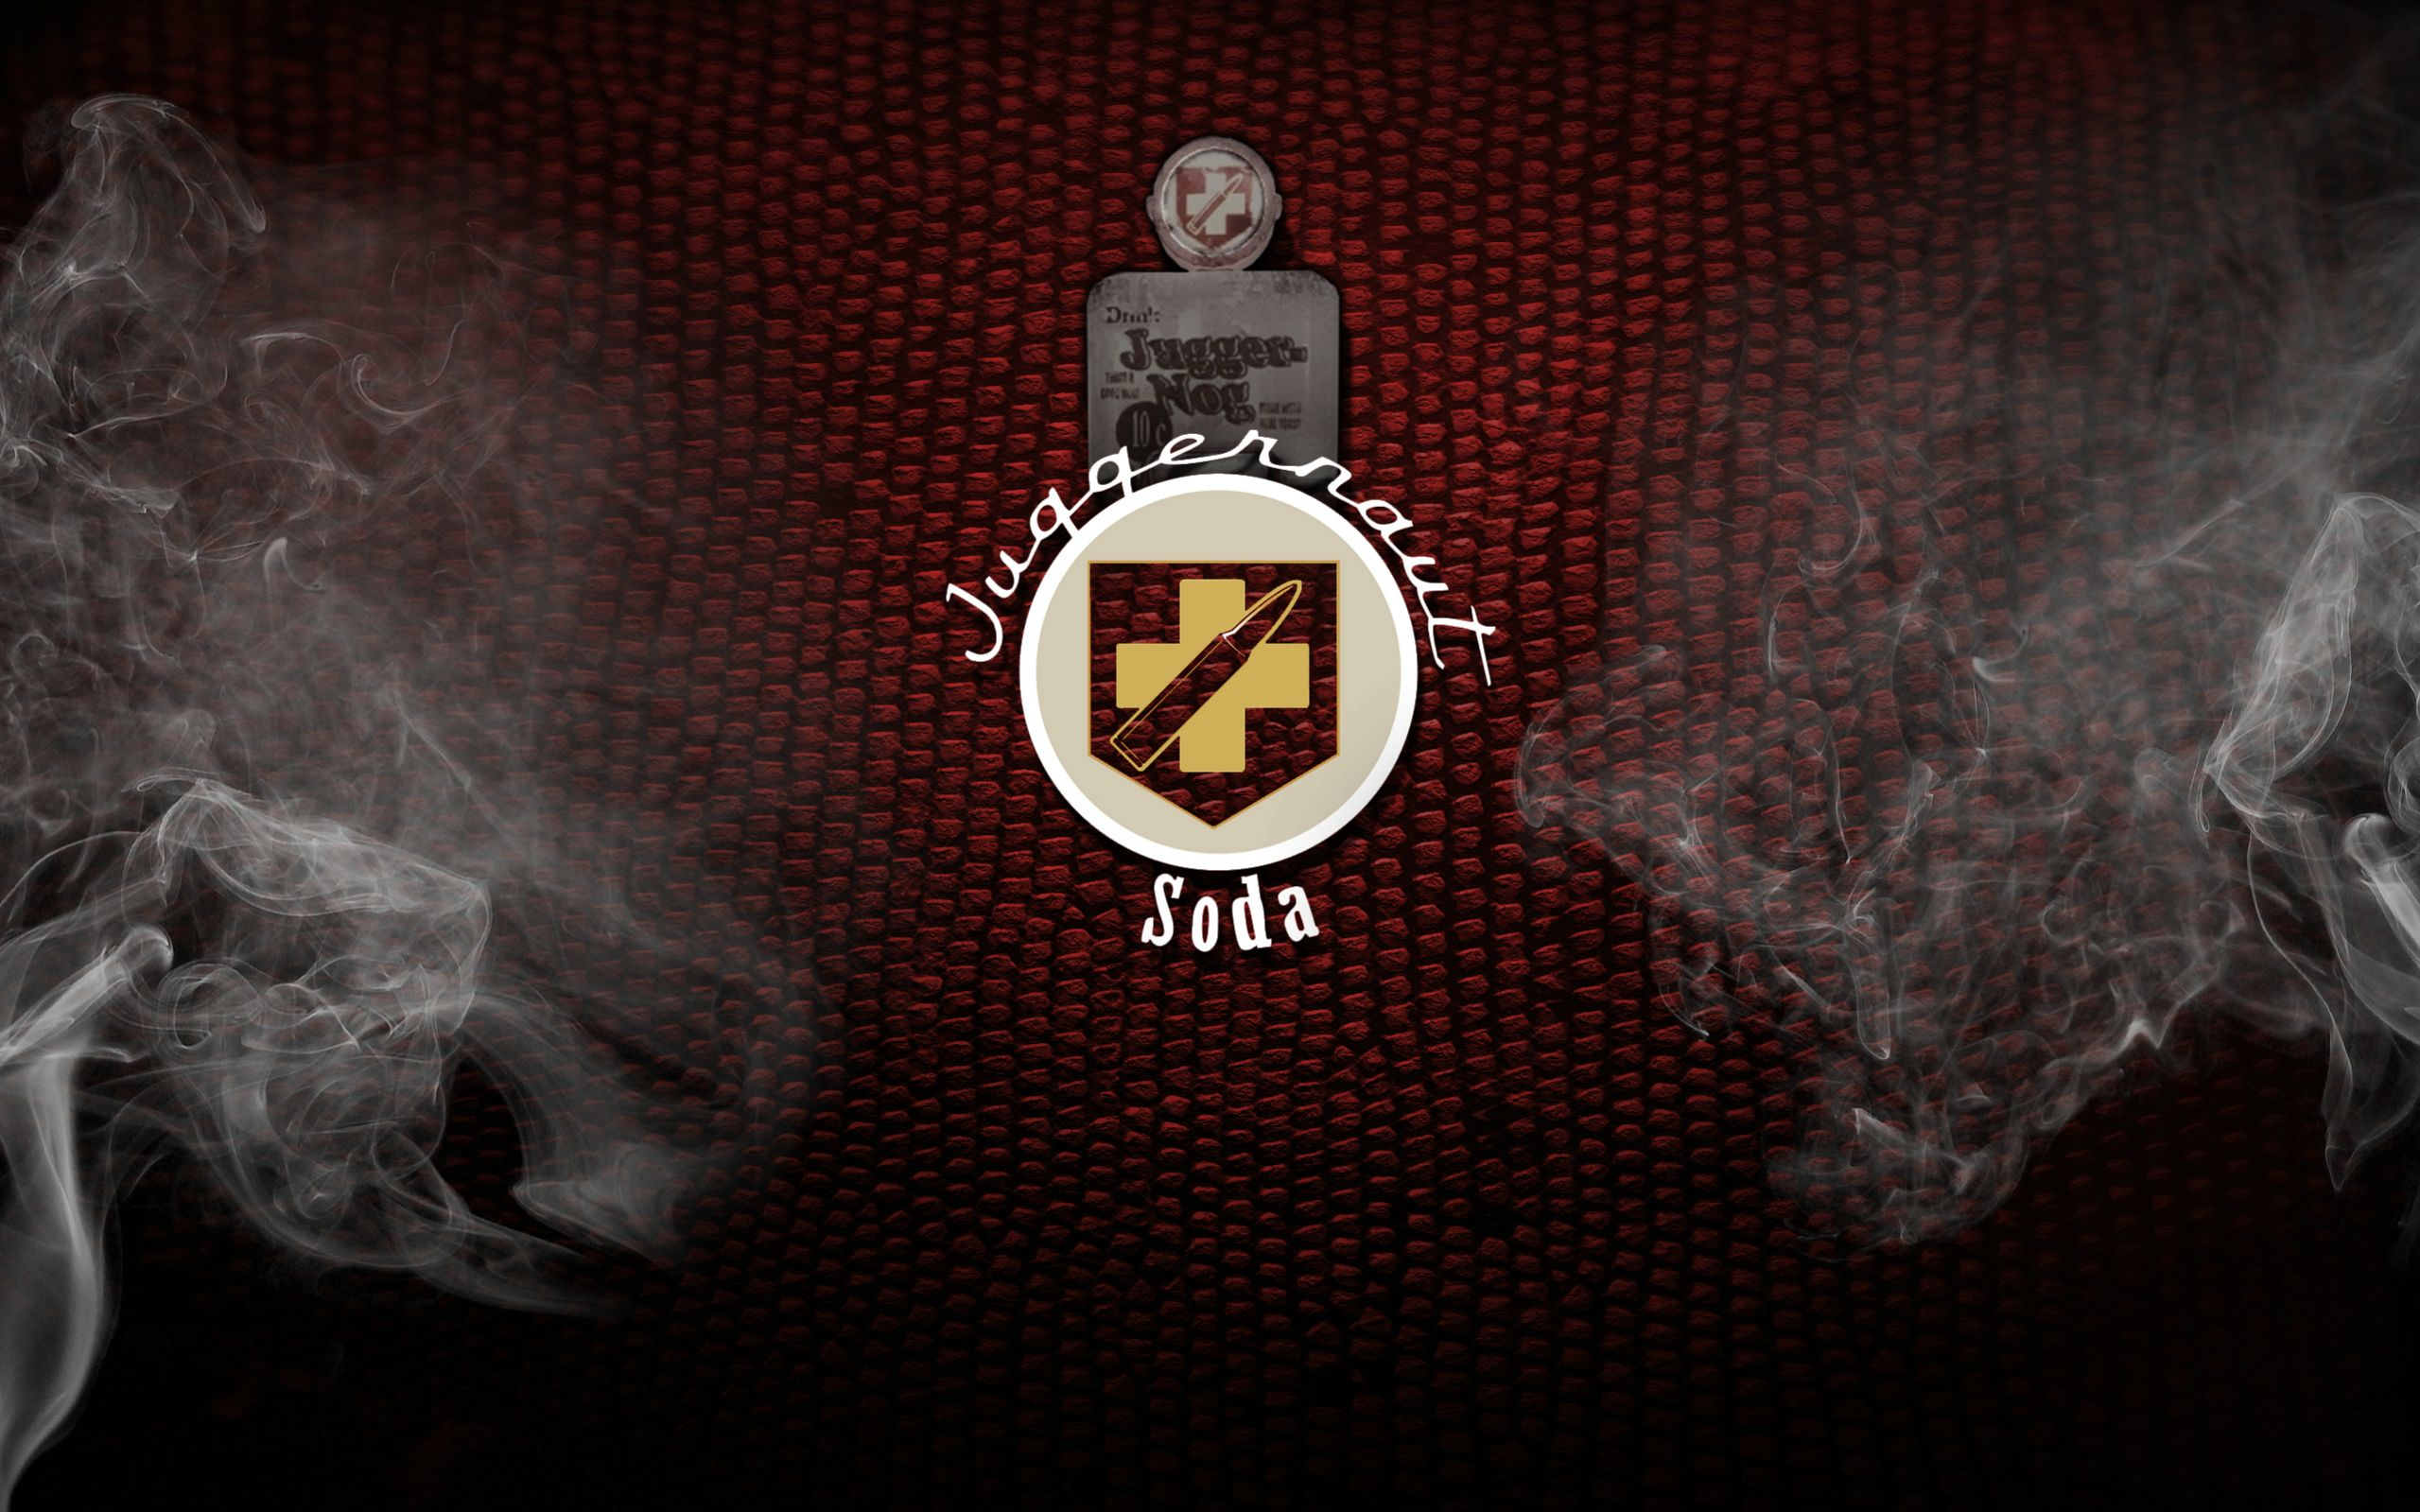 I Rolled Out a 3rd Wallpaper Juggernog This Time [2560x1600 2559x1599